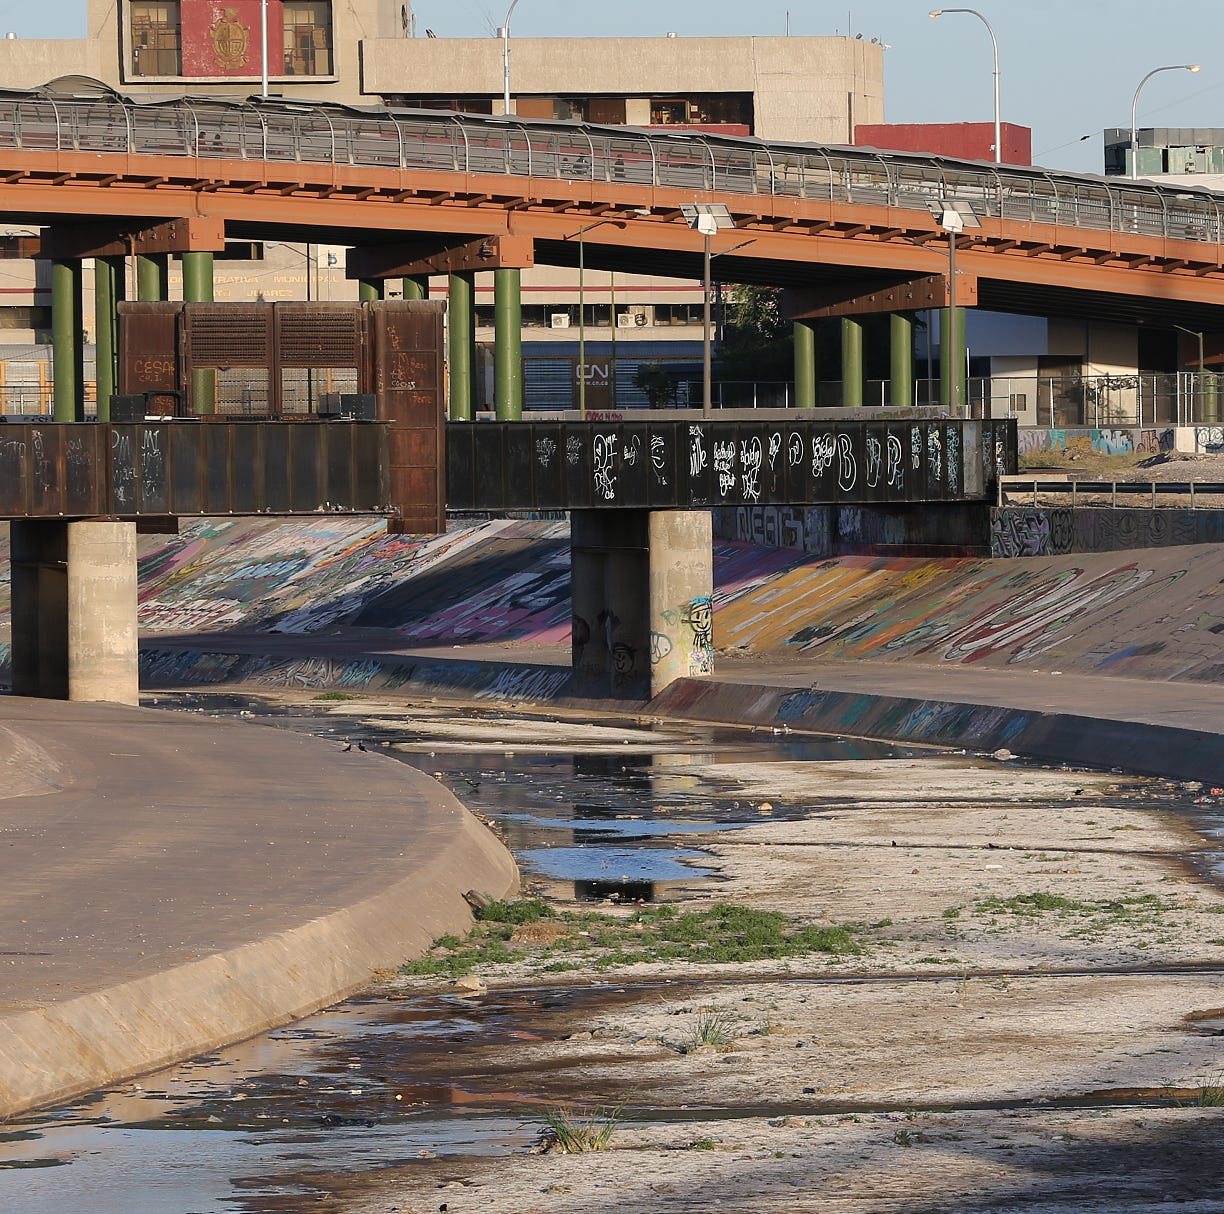 El Paso could see water flow down the Rio Grande in June